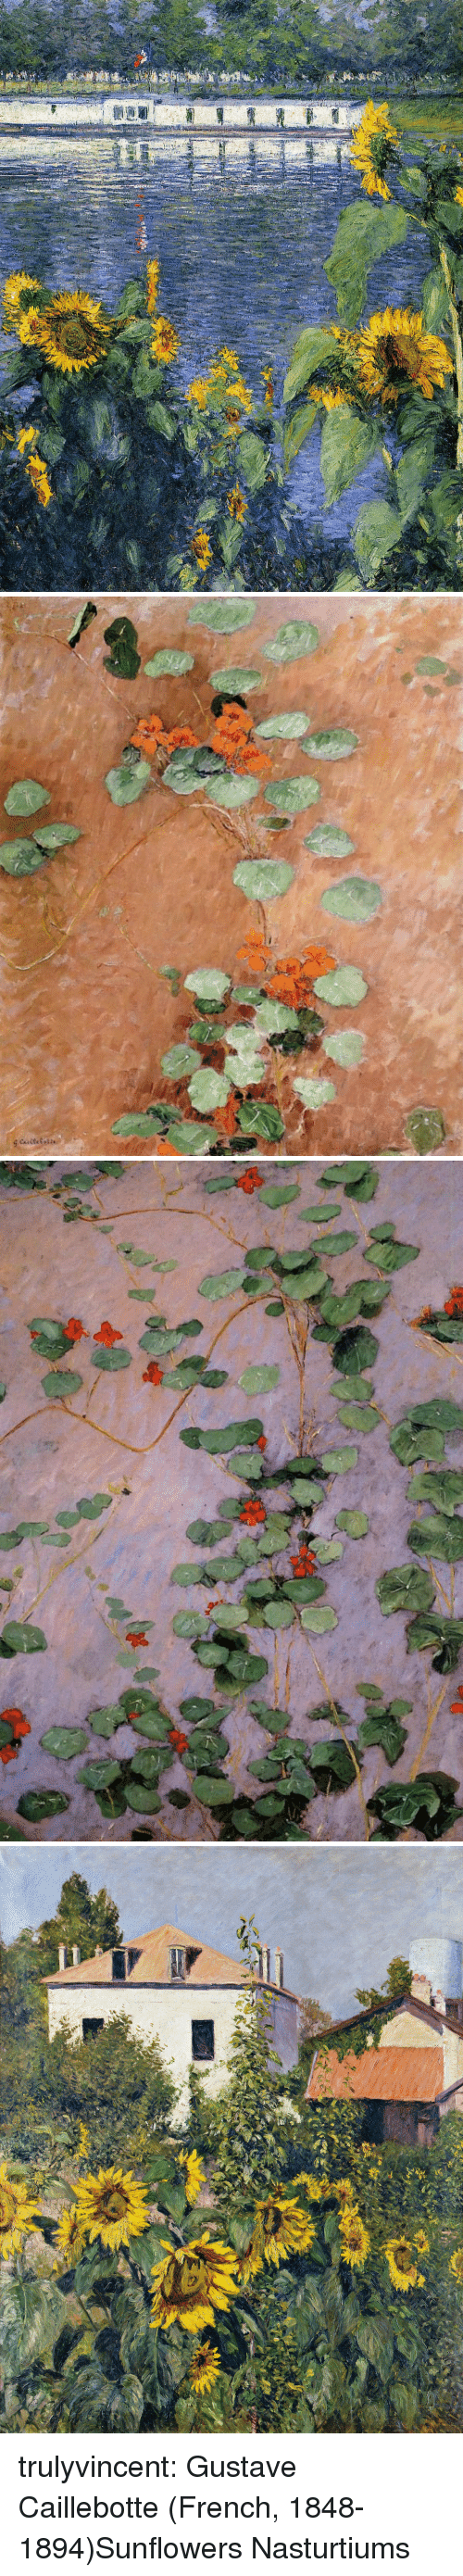 Tumblr, Blog, and French: trulyvincent: Gustave Caillebotte (French, 1848-1894)Sunflowers  Nasturtiums